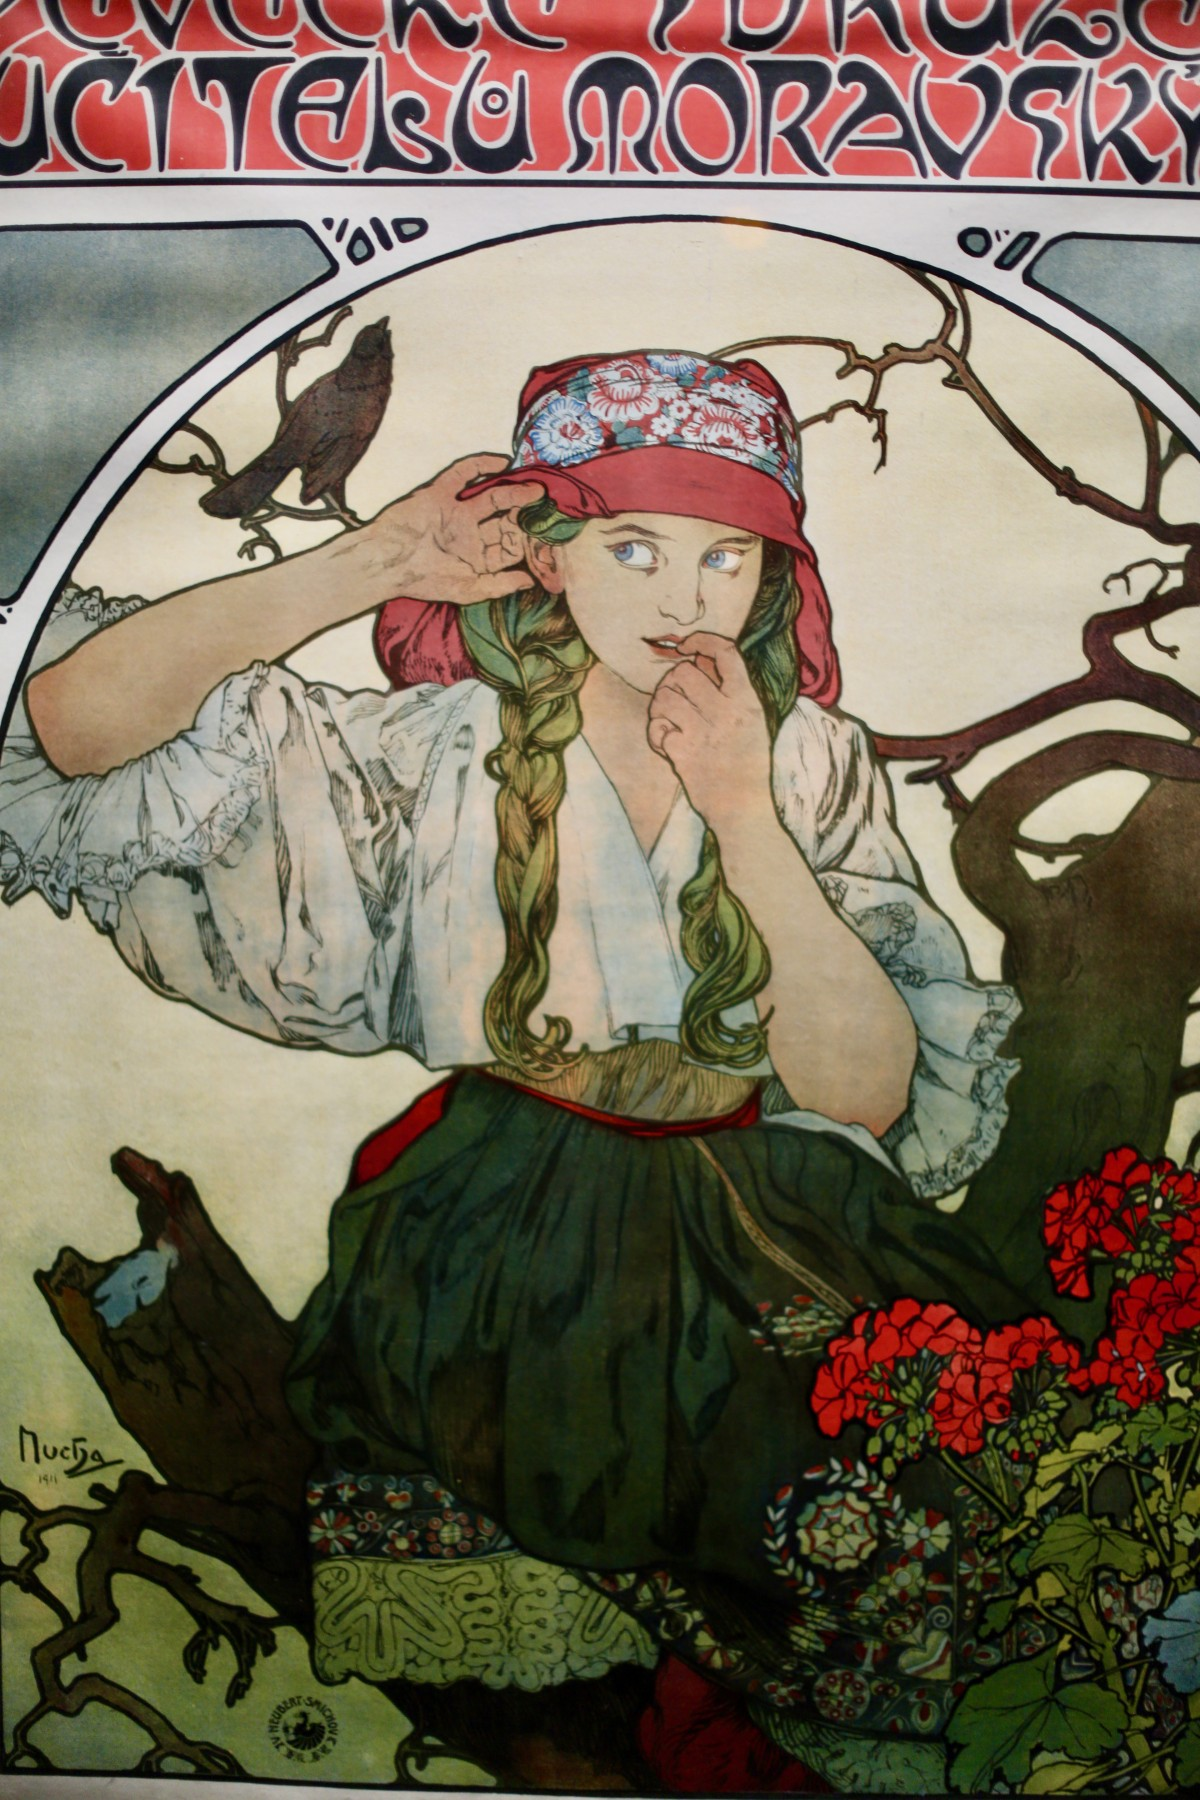 blog musee paris expo mucha www.upupup.fr 10